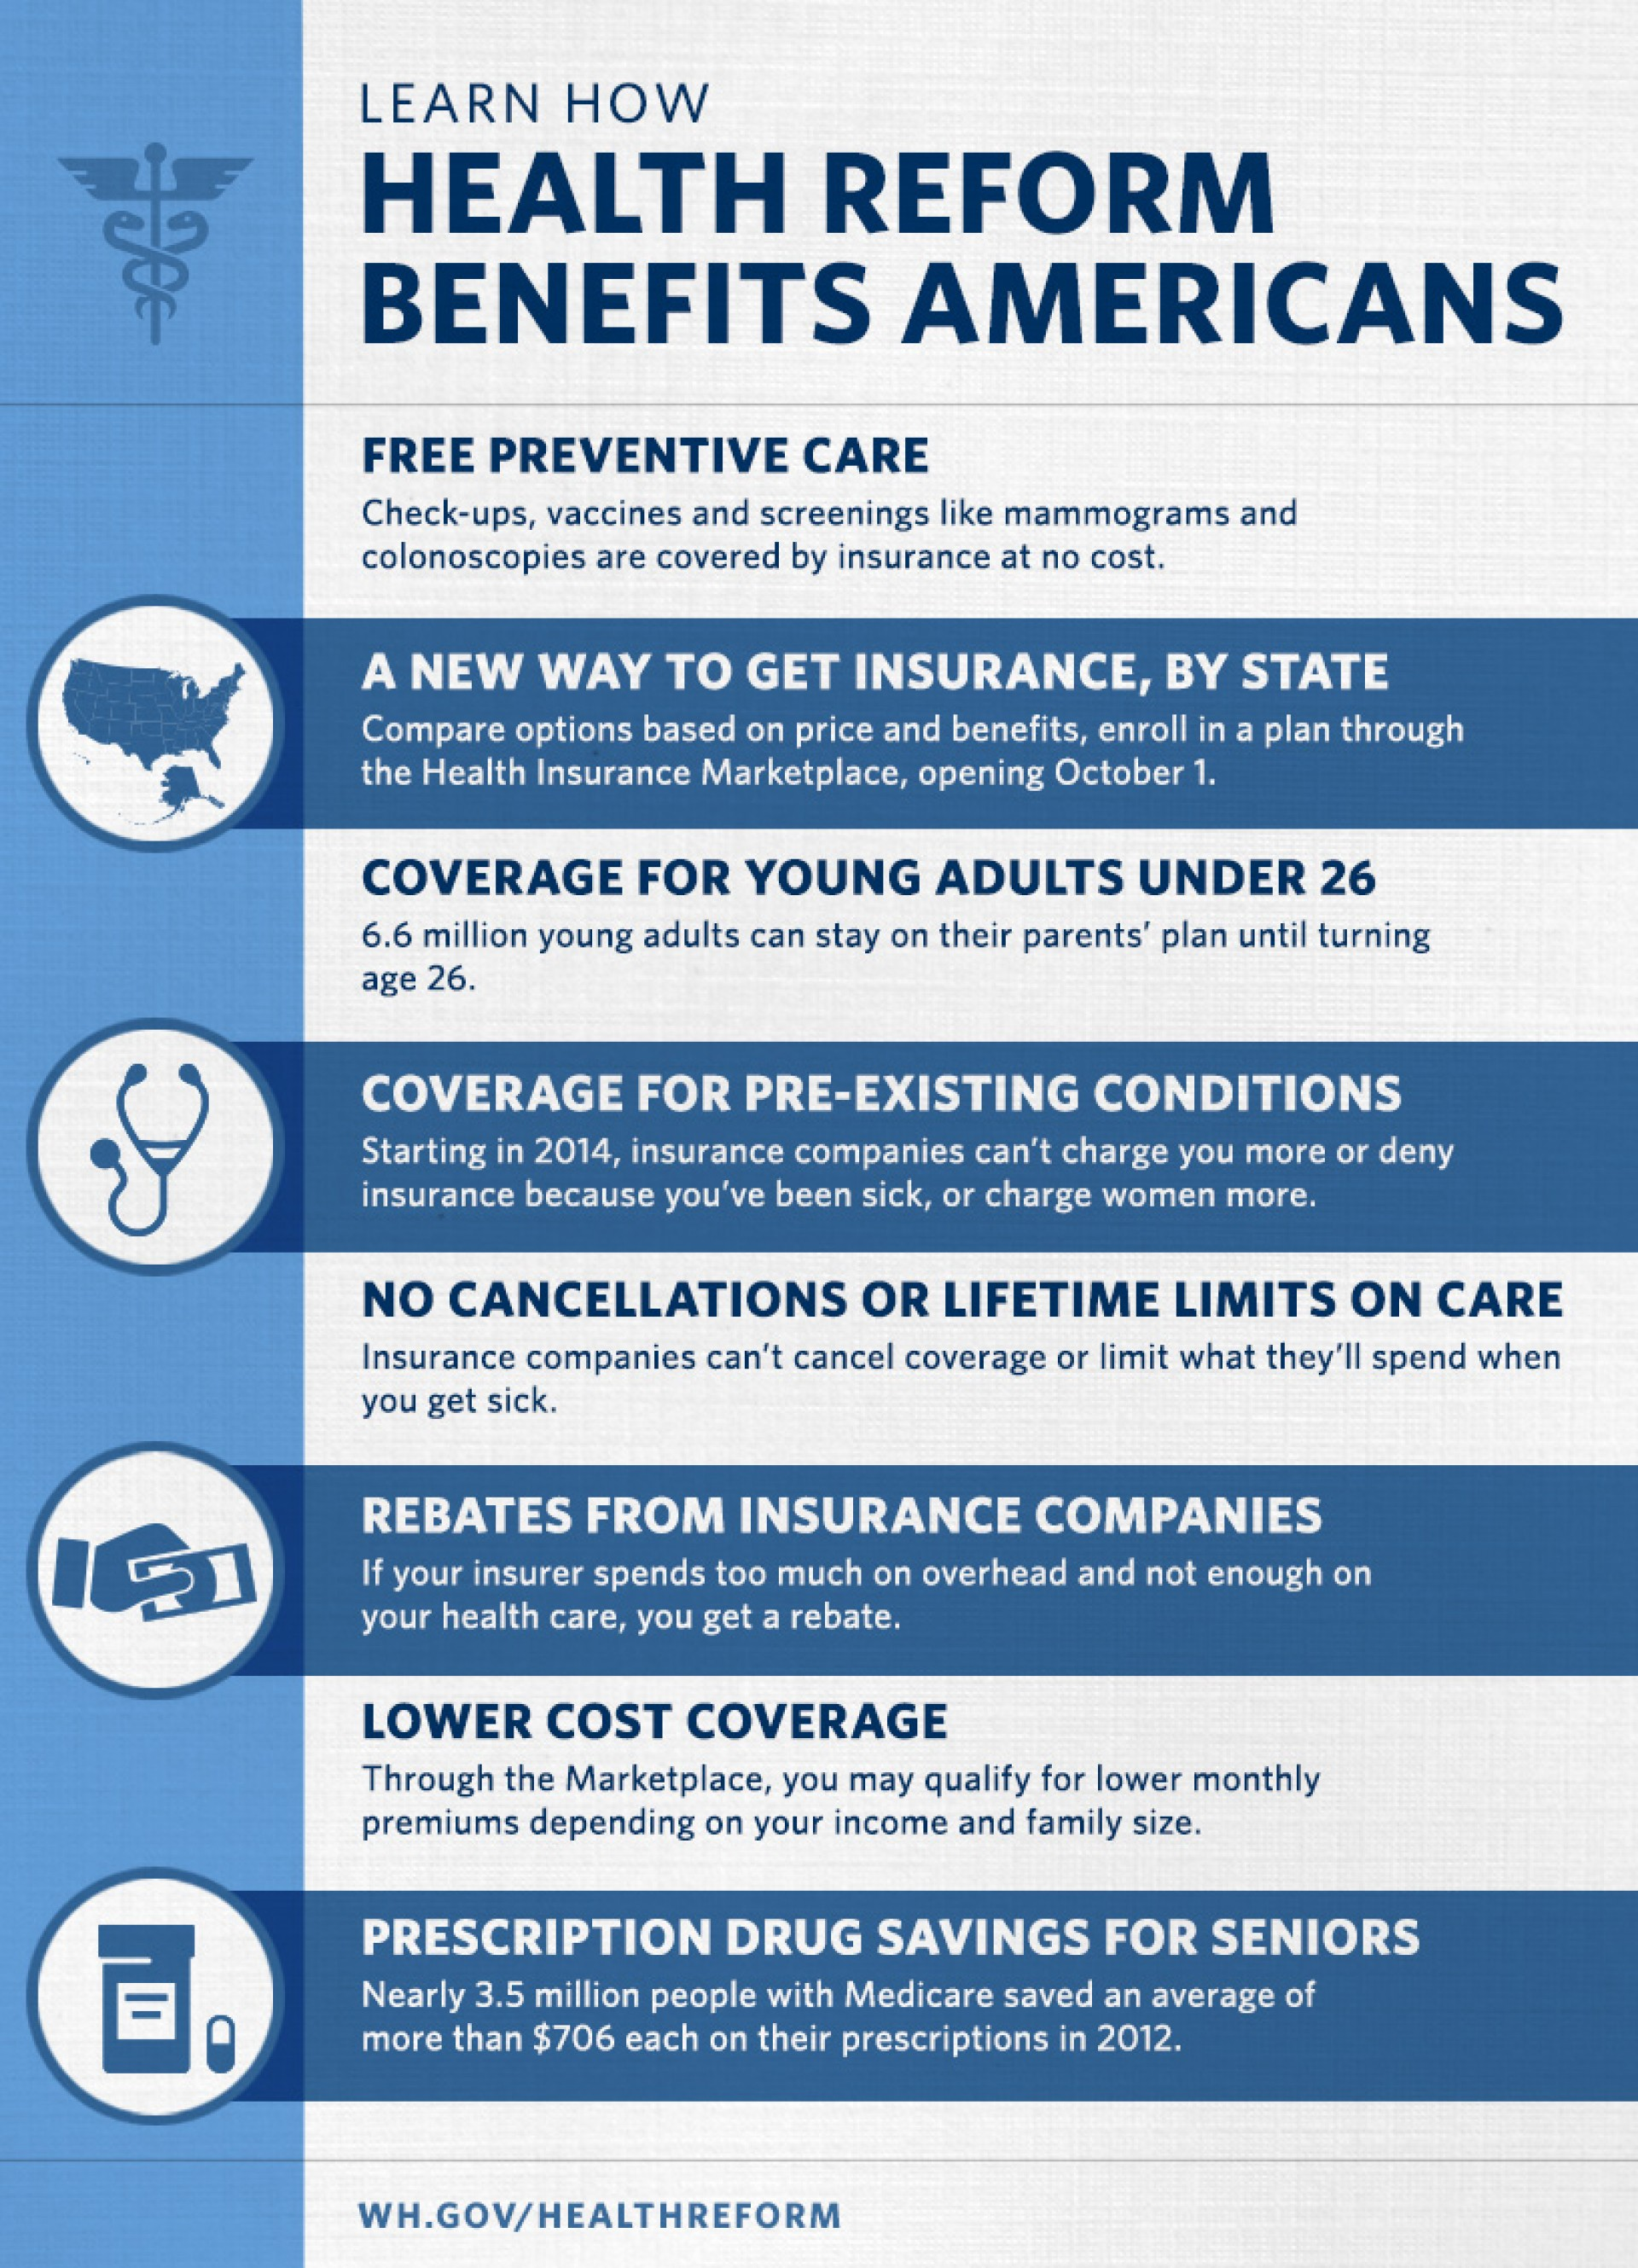 004 Obamacare Essay Healthcare List Graphic 08072013 0 Stupendous Analysis Repeal Conclusion 1920